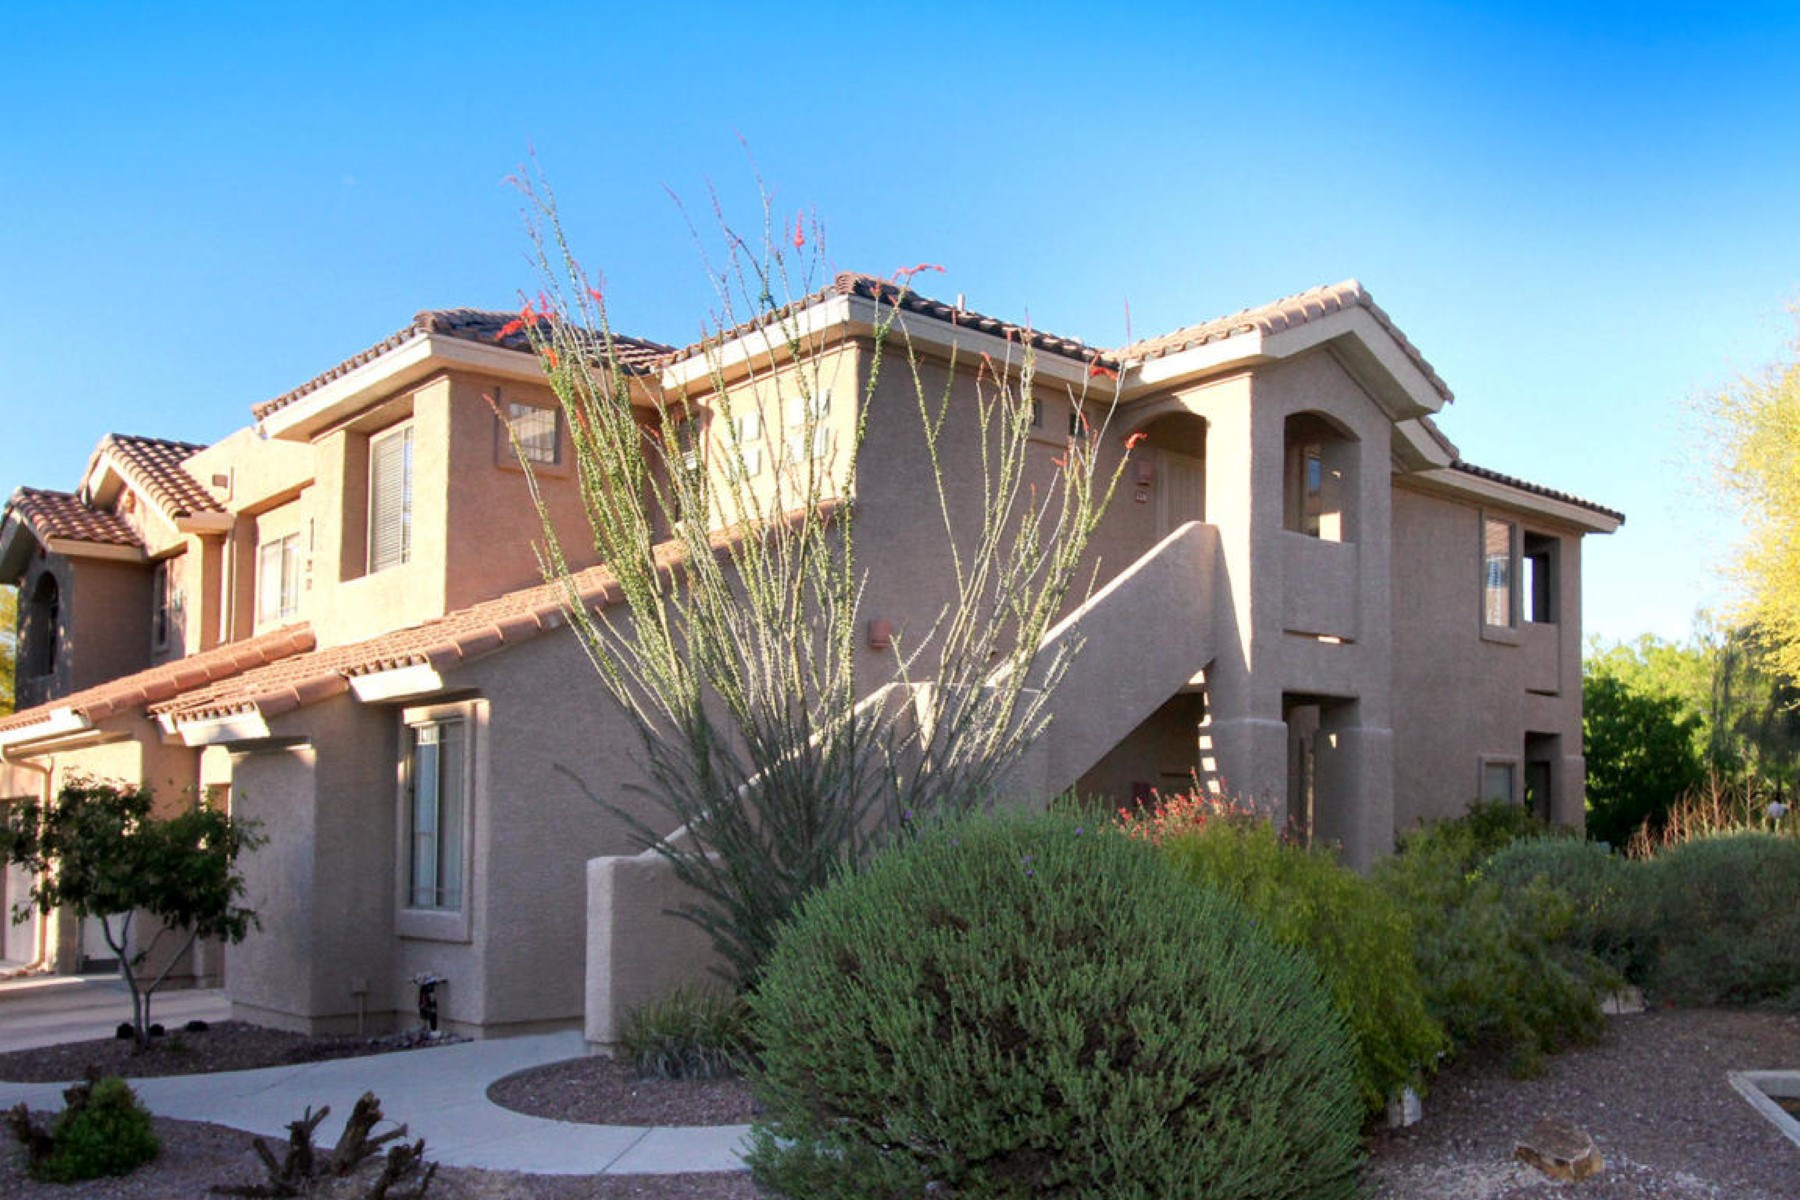 Single Family Home for Sale at Beautifully decorated three bedroom home 755 W Vistoso Highlands Drive #220 Oro Valley, Arizona, 85755 United States